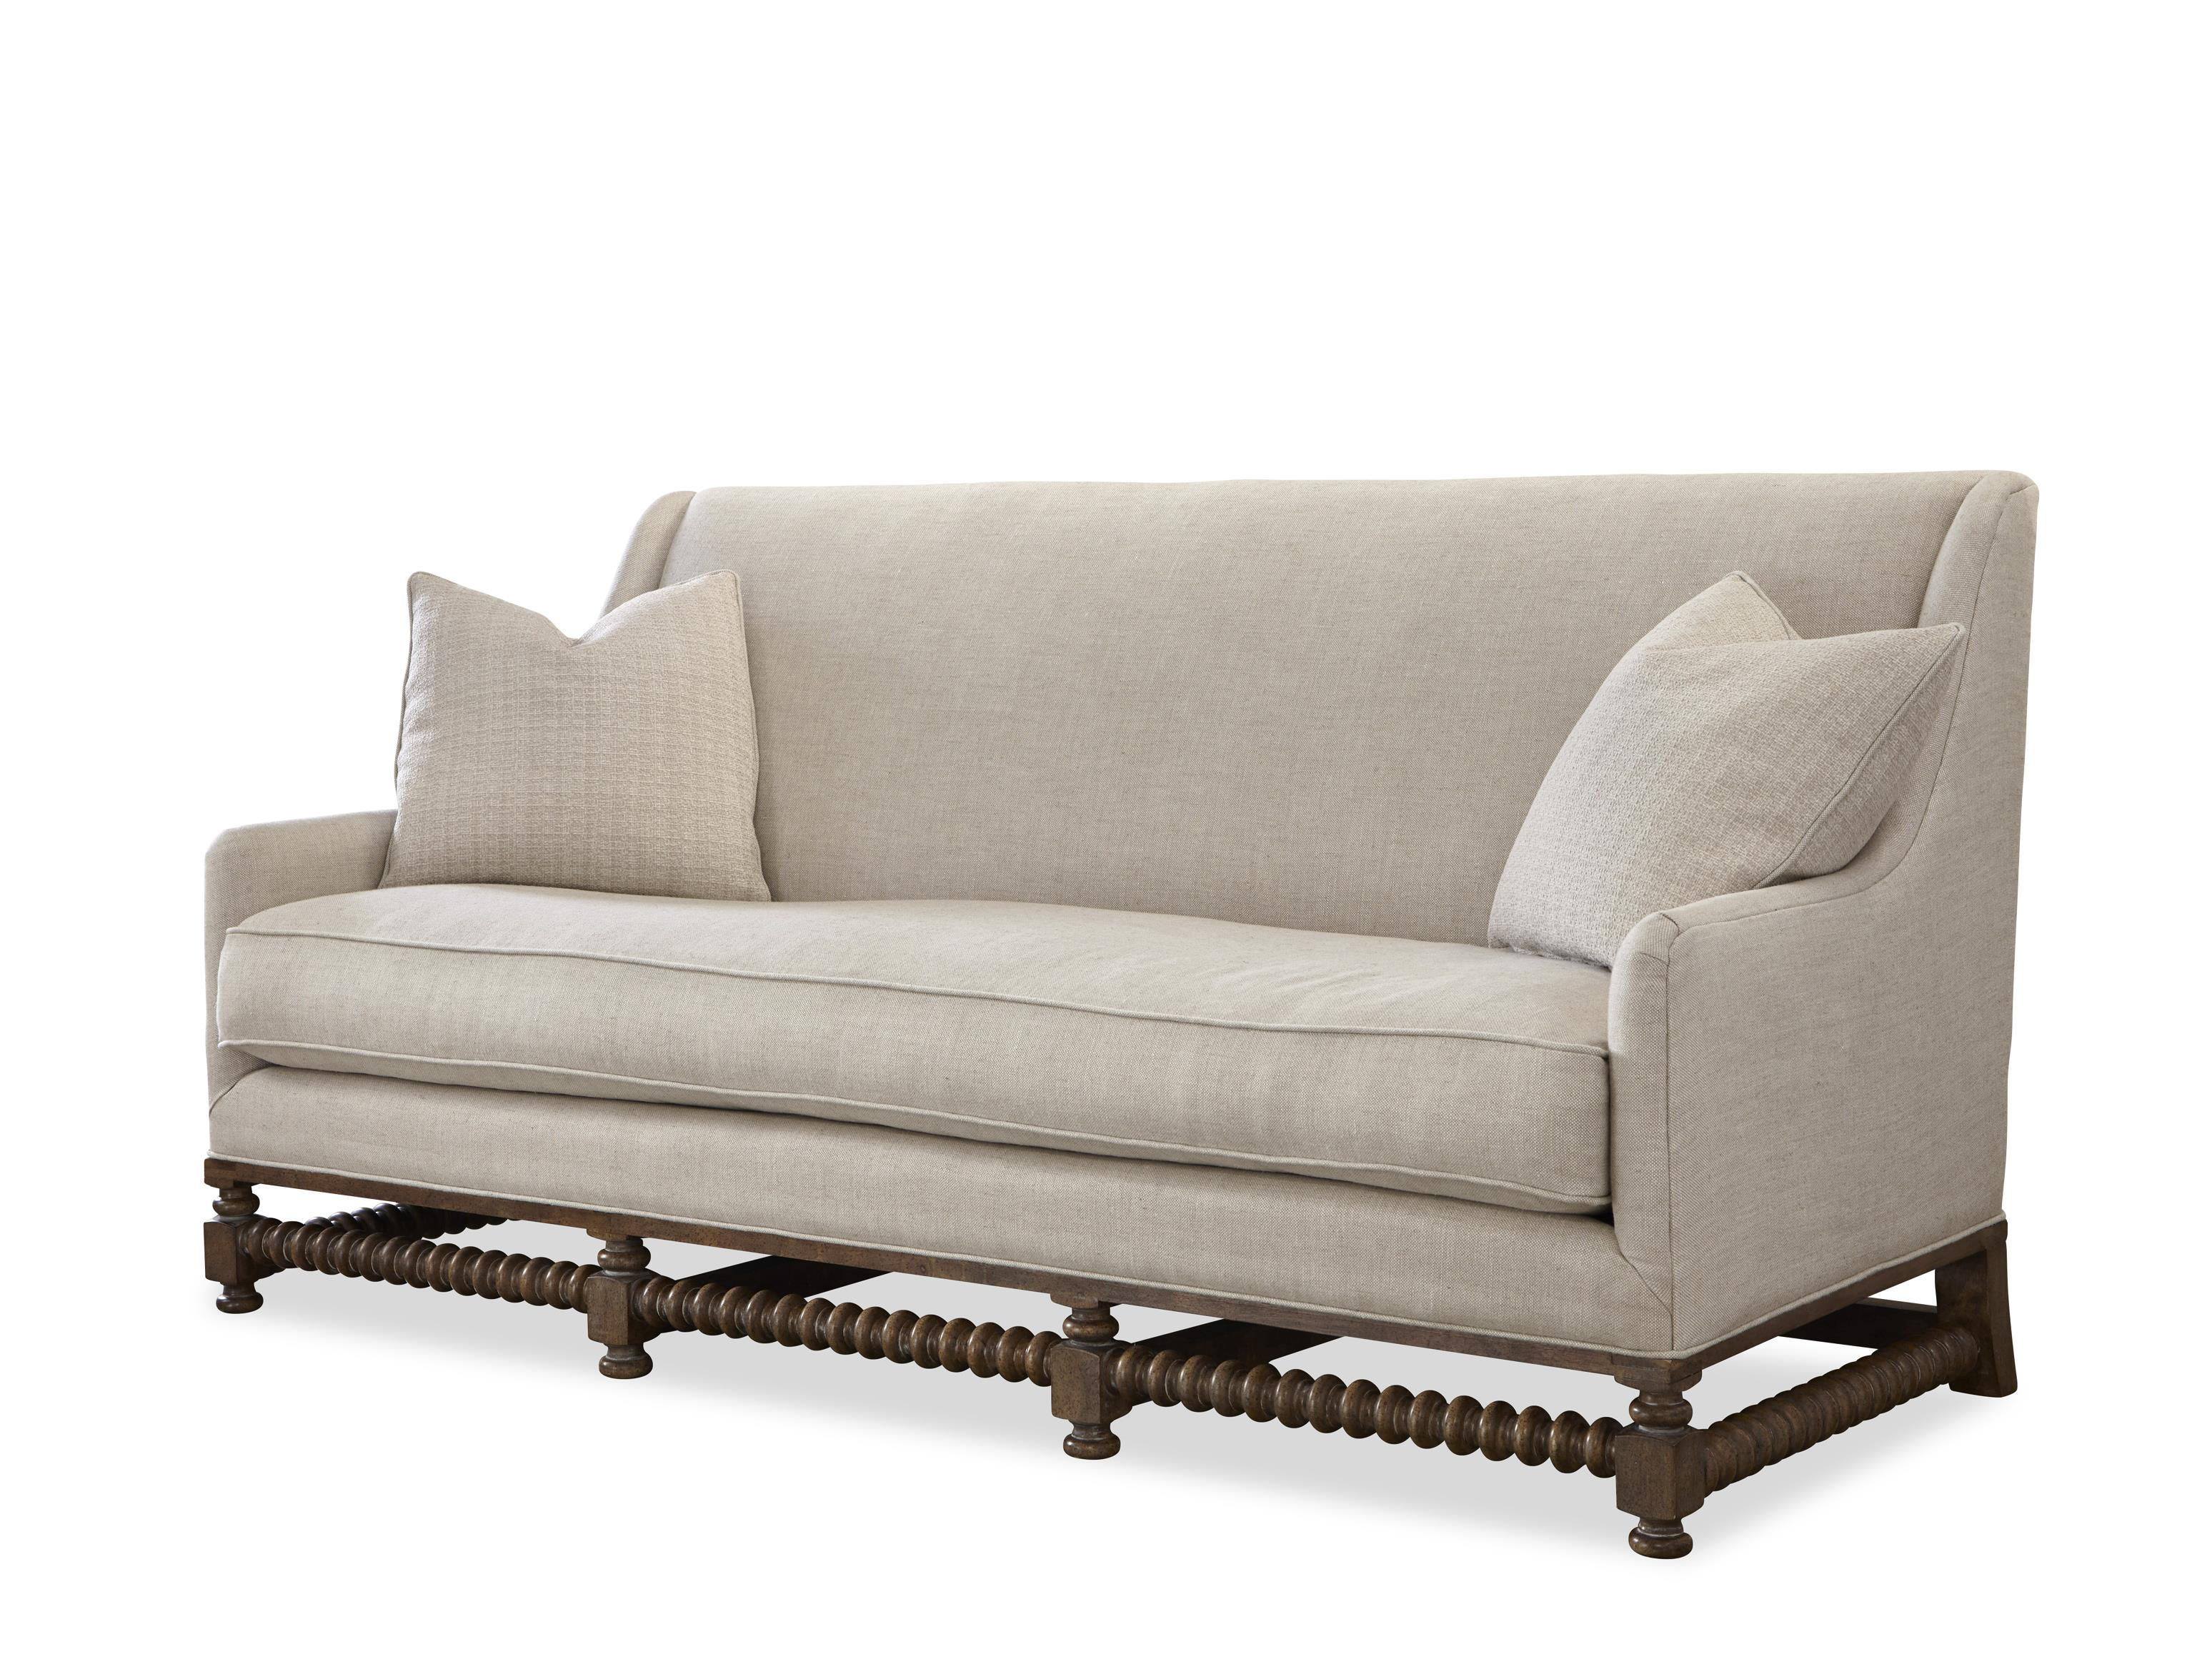 Universal Sundance CLEARANCE Contemporary Sloped Arm Sofa with